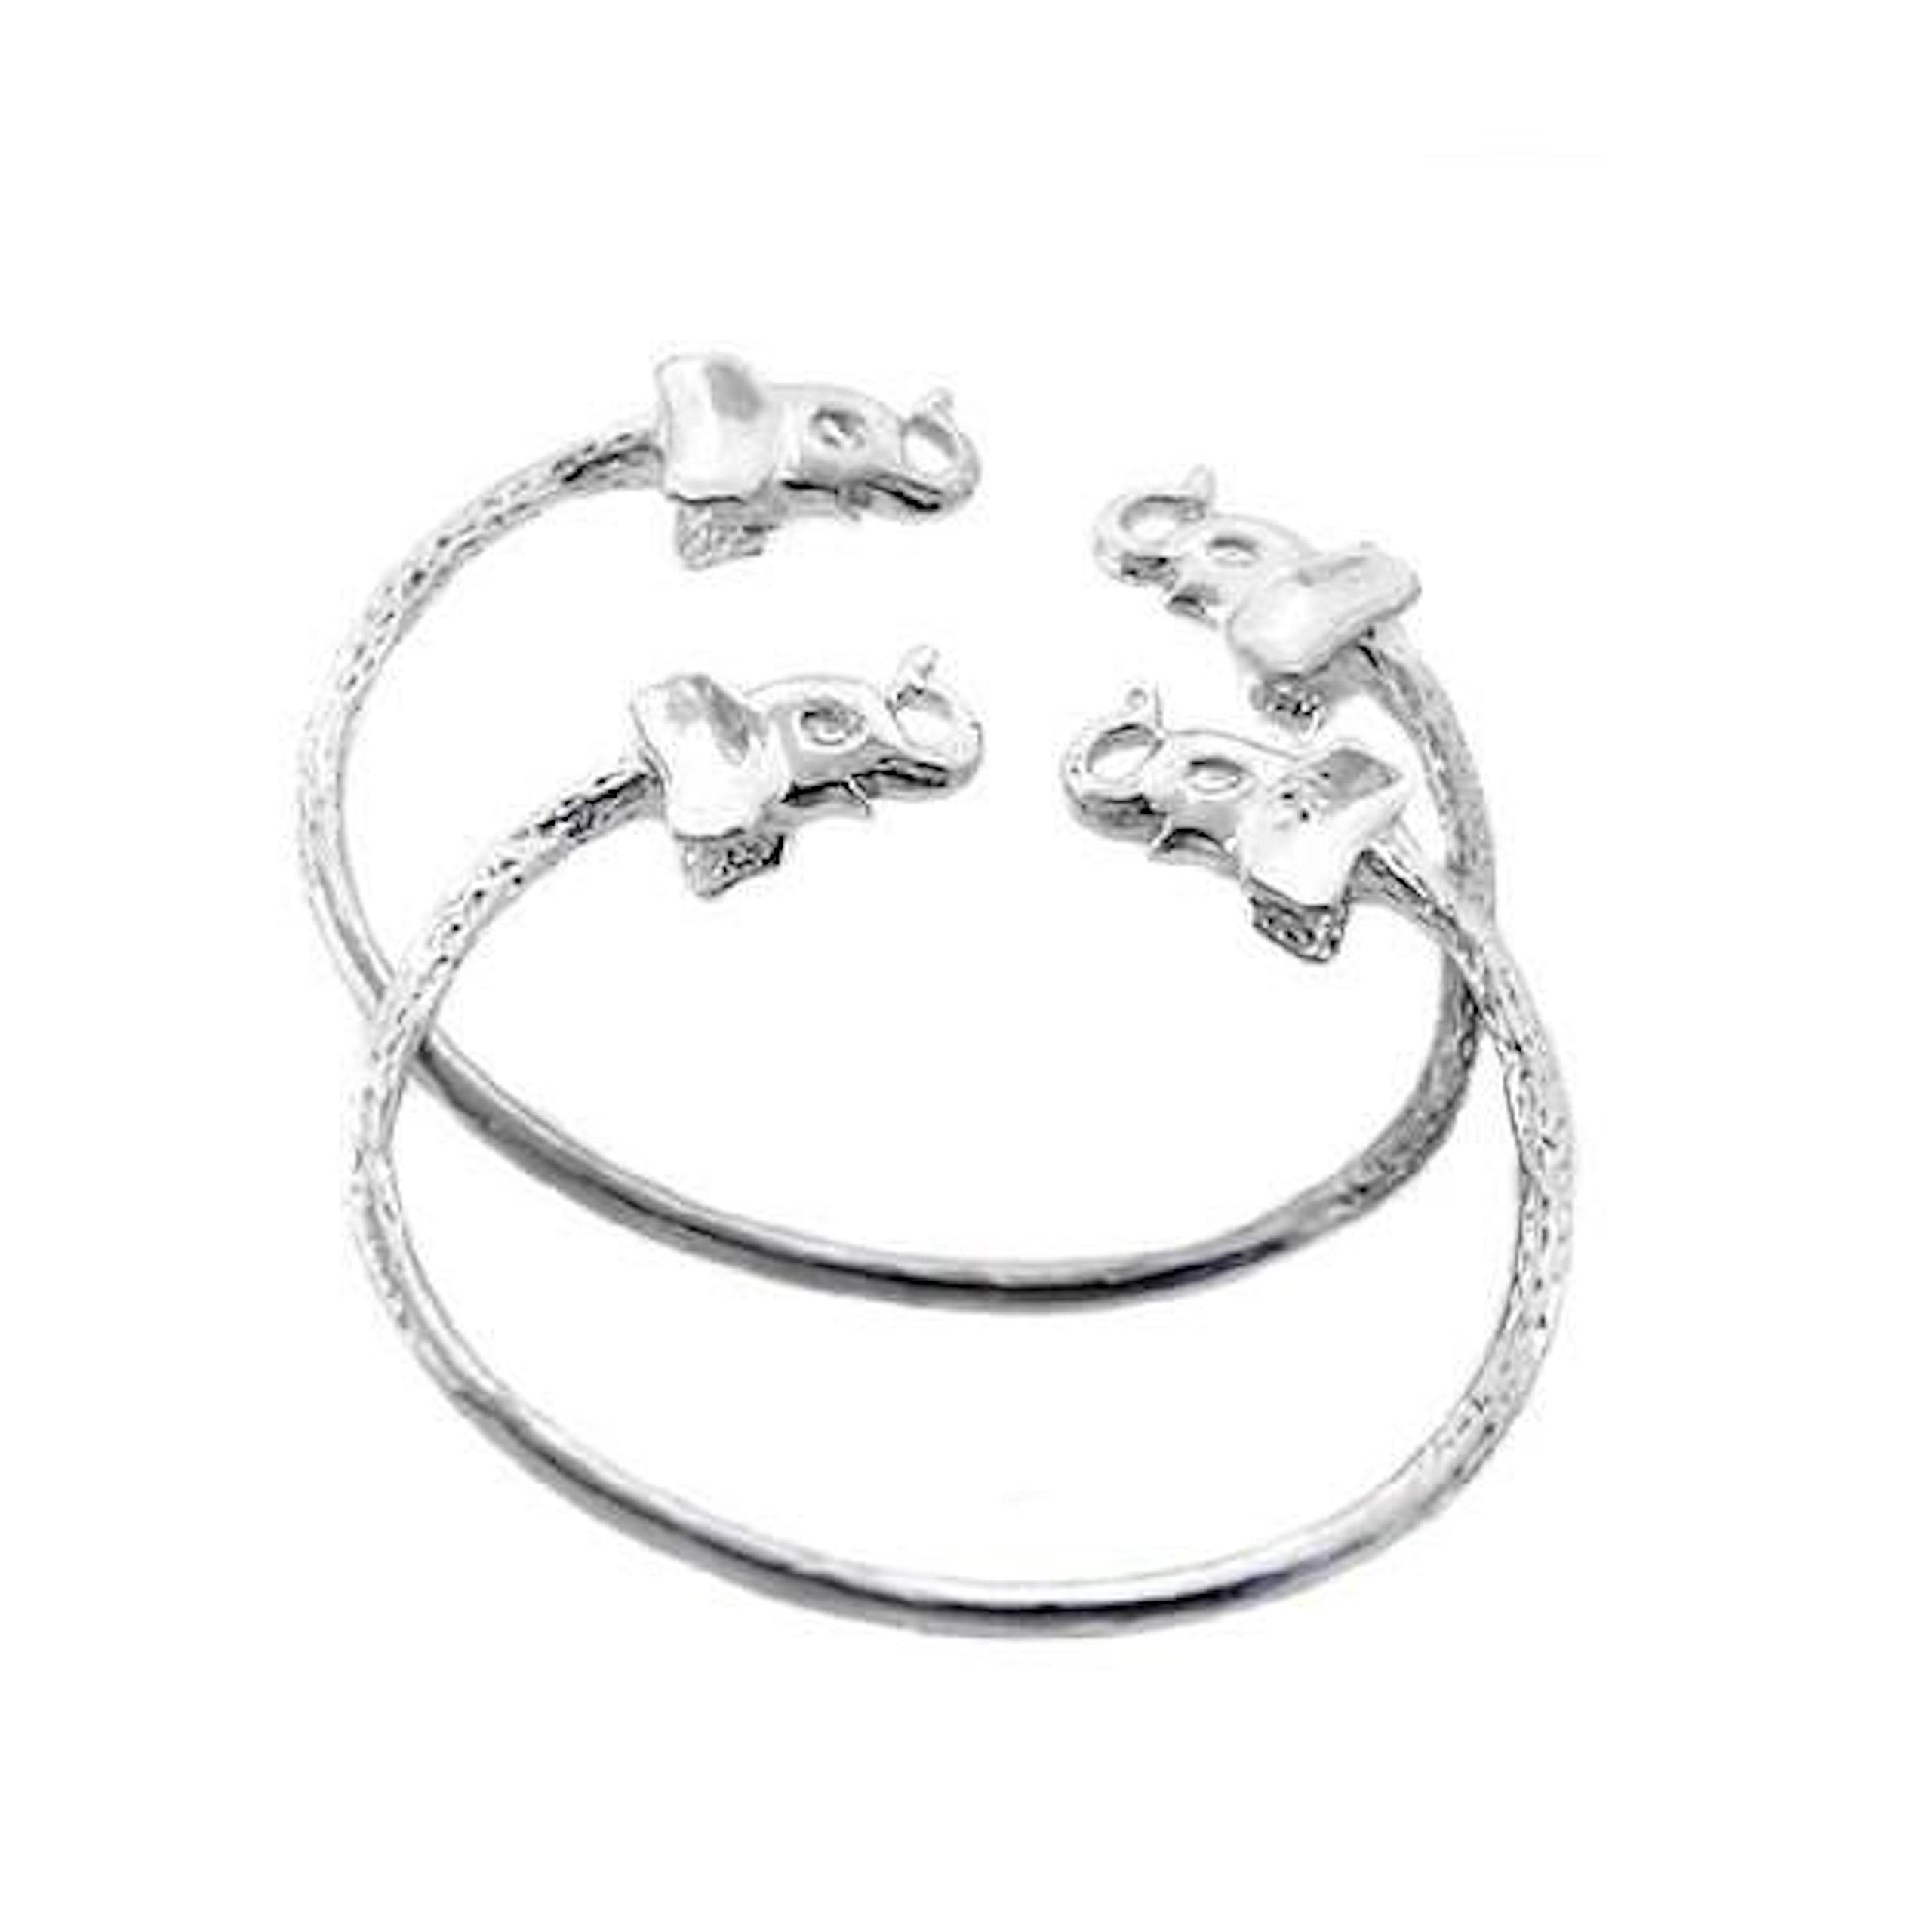 Elephant .925 Sterling Silver West Indian BABY Bangles (MADE IN USA)